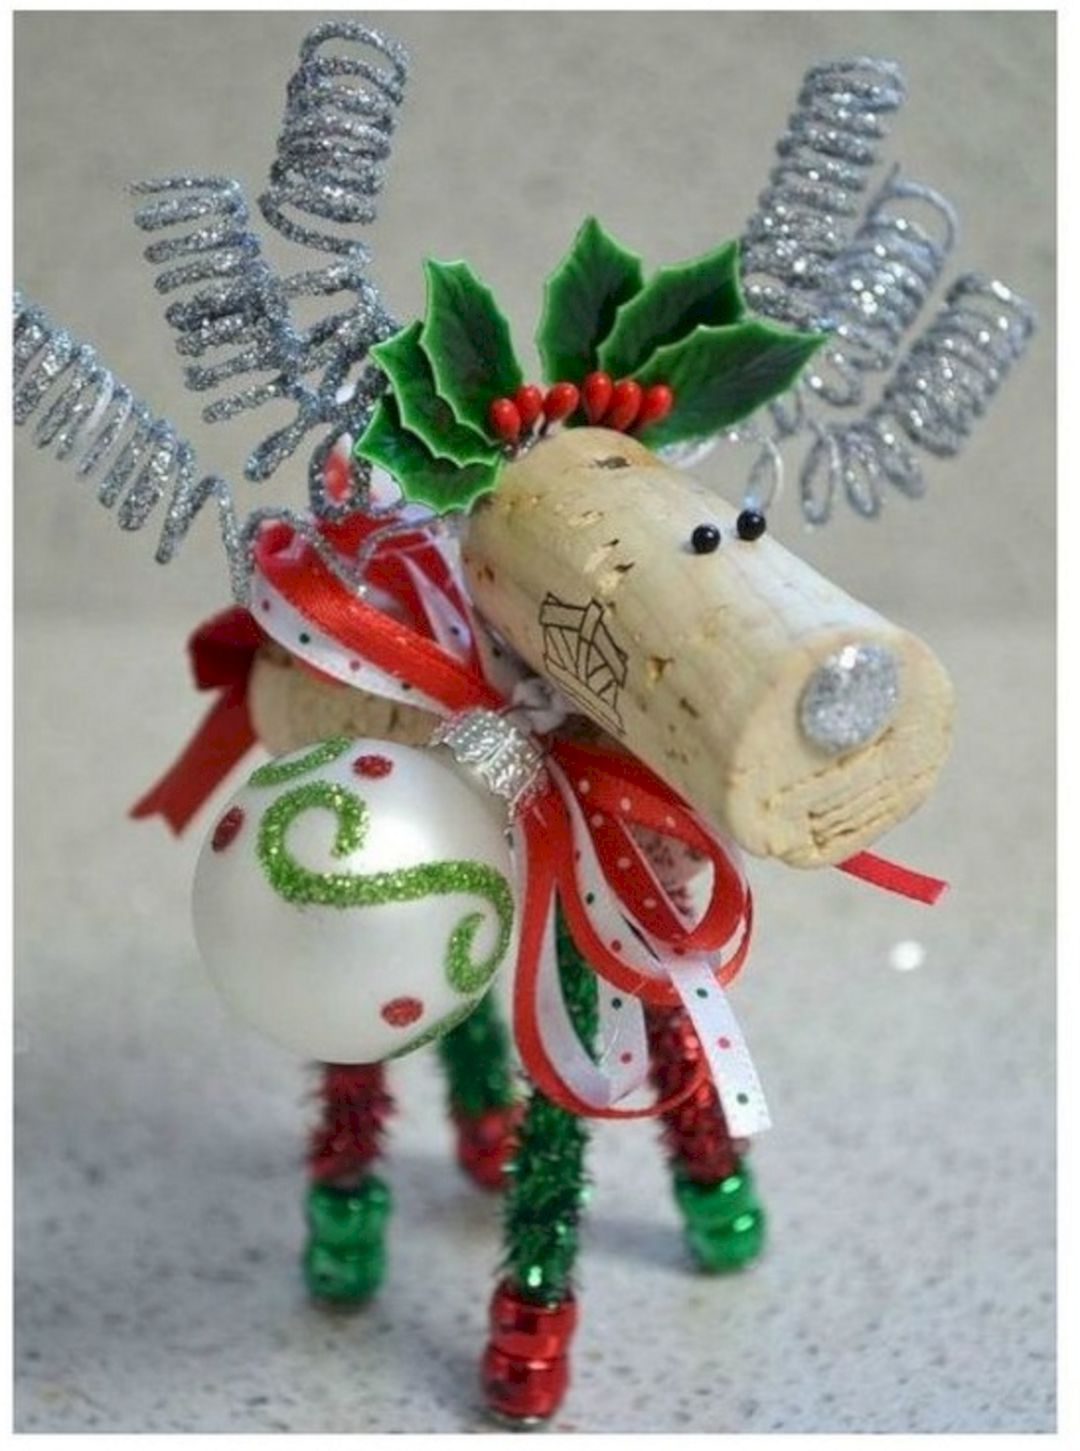 Best Wine Cork Ideas For Home Decorations 303 Goodsgn Cork Crafts Christmas Wine Cork Crafts Wine Cork Ornaments